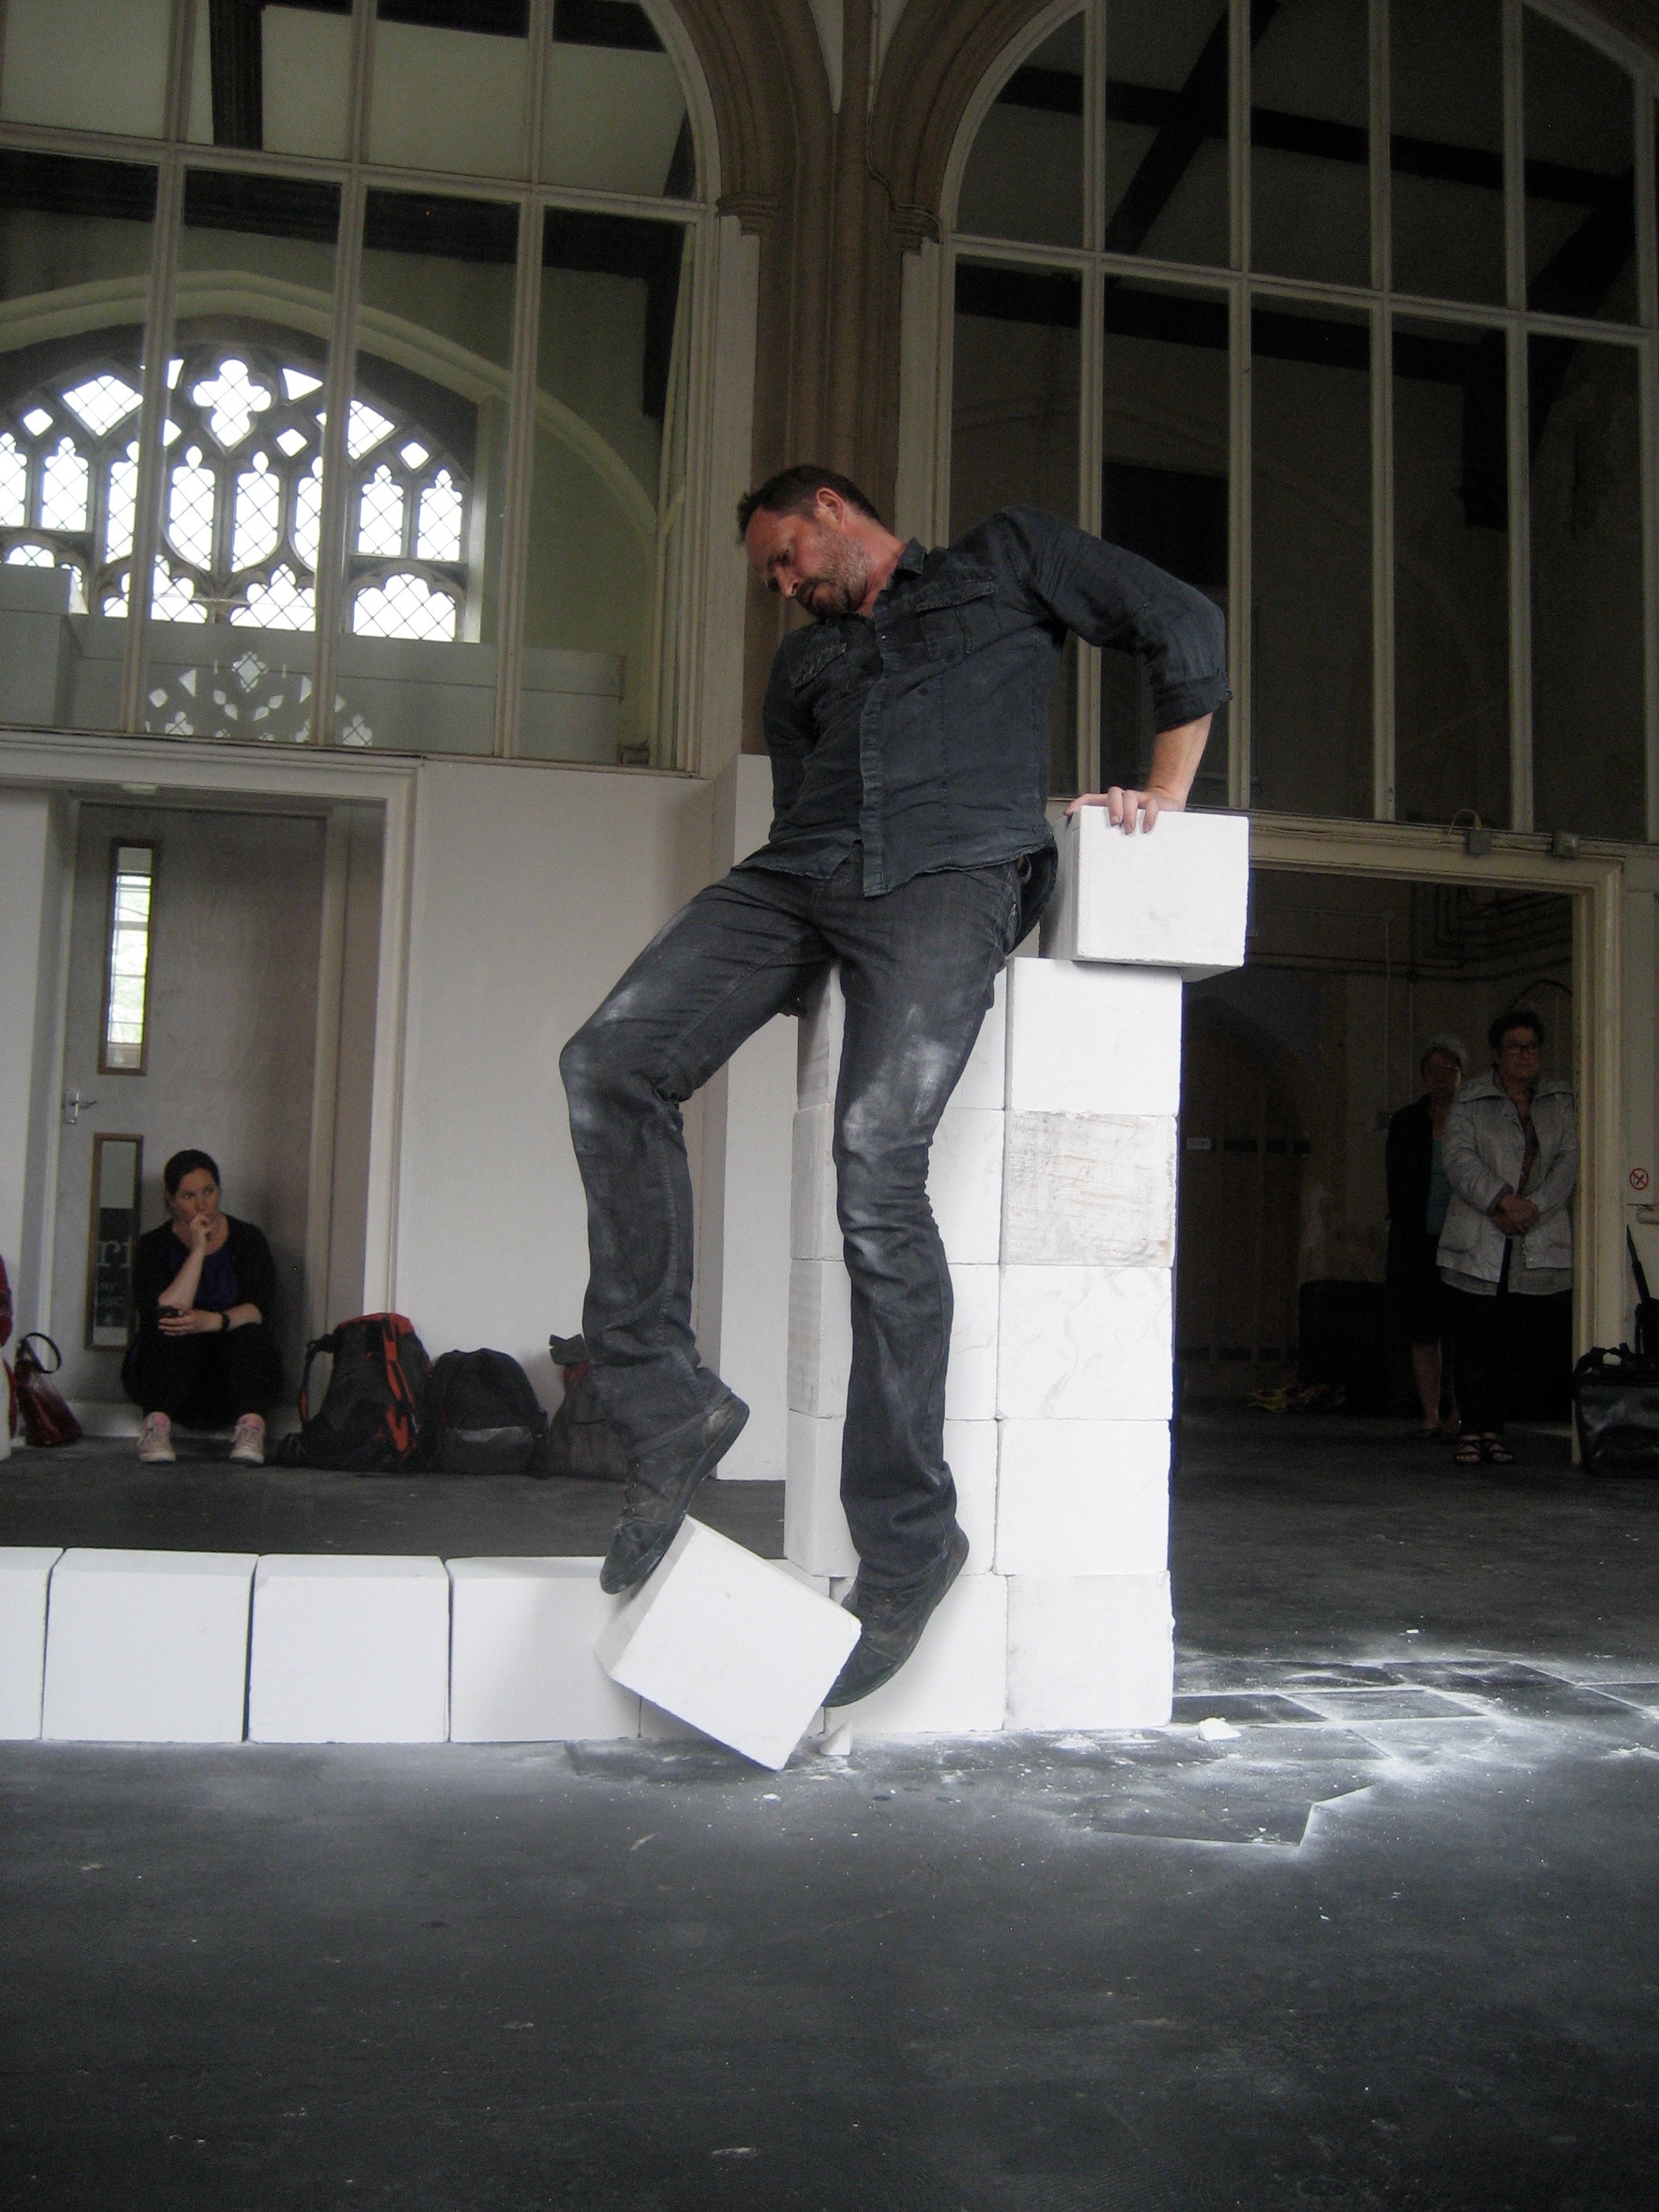 Claude Cattelain  For the performance 'Colonne empirique en ligne', he reconstructs a horizontal line of white Ytong blocks into a vertical column, moving them one by one from their ground line. In doing so, his body must not touch the ground, so the column becomes both his task and his perch. His balance is increasingly perilous, grasping the next block becomes ever more challenging and eventually impossible. Here it is being performed in Norwich in 2014 as part of a European cross-channel 'Interreg' funded programme 'Time and Place'. fabrica.org.uk